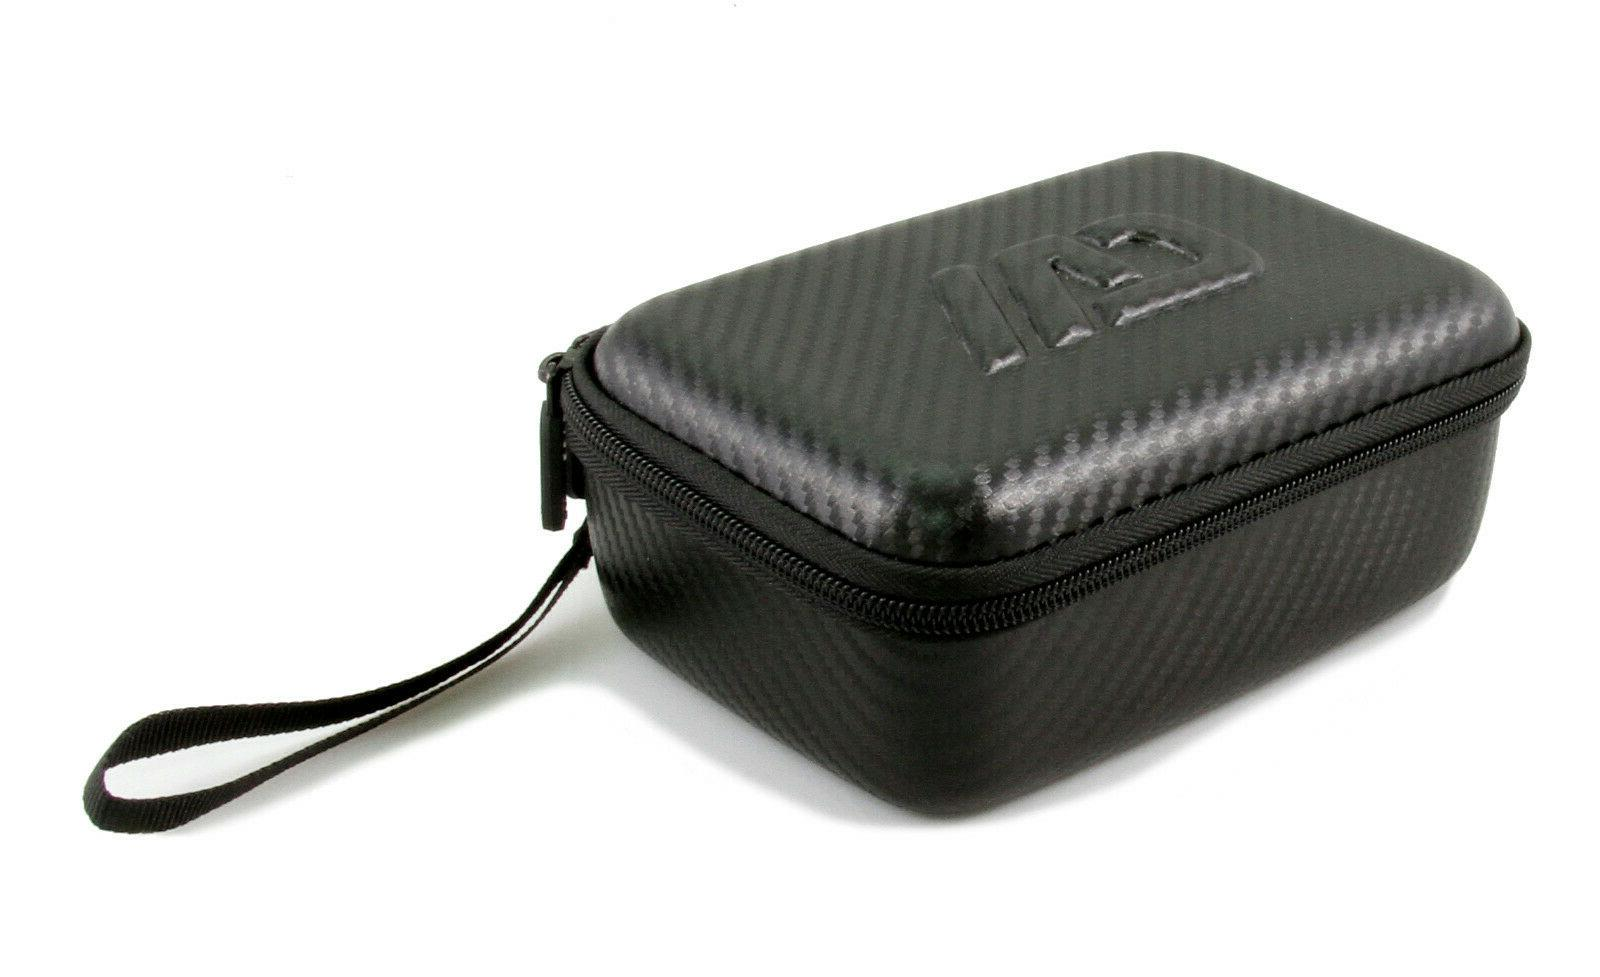 wireless router case fits one